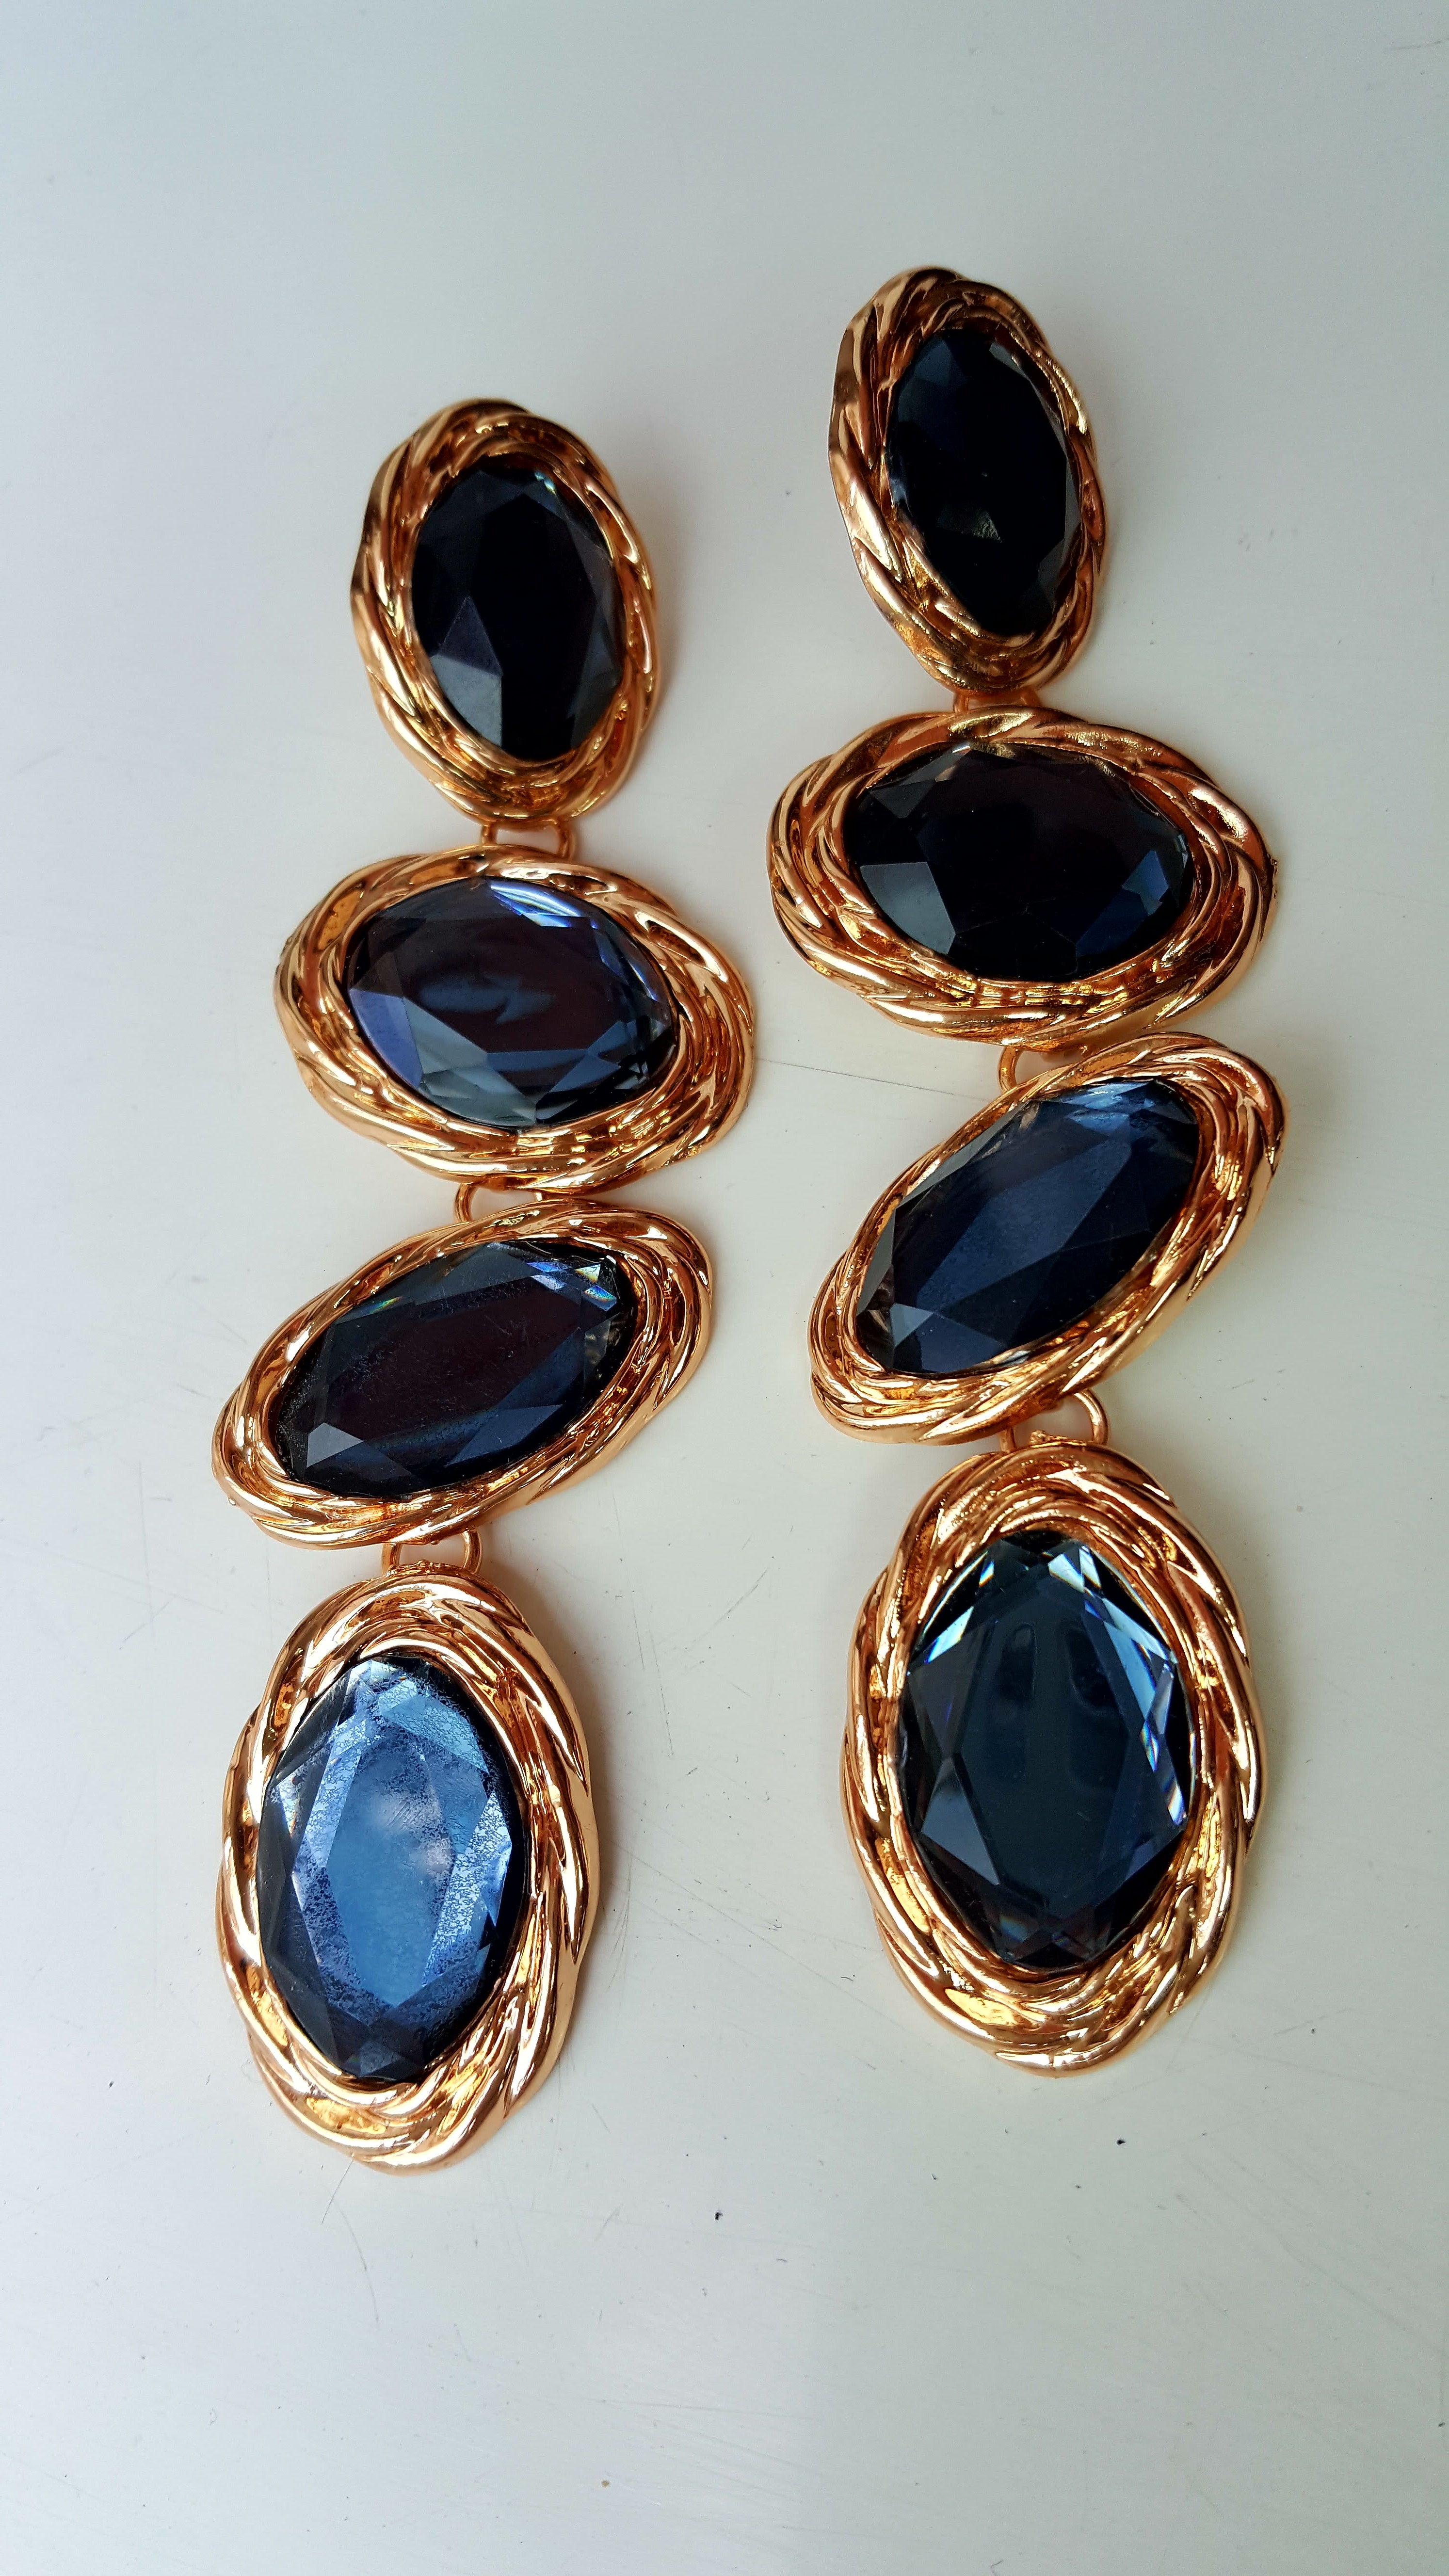 Angela Blue River earrings